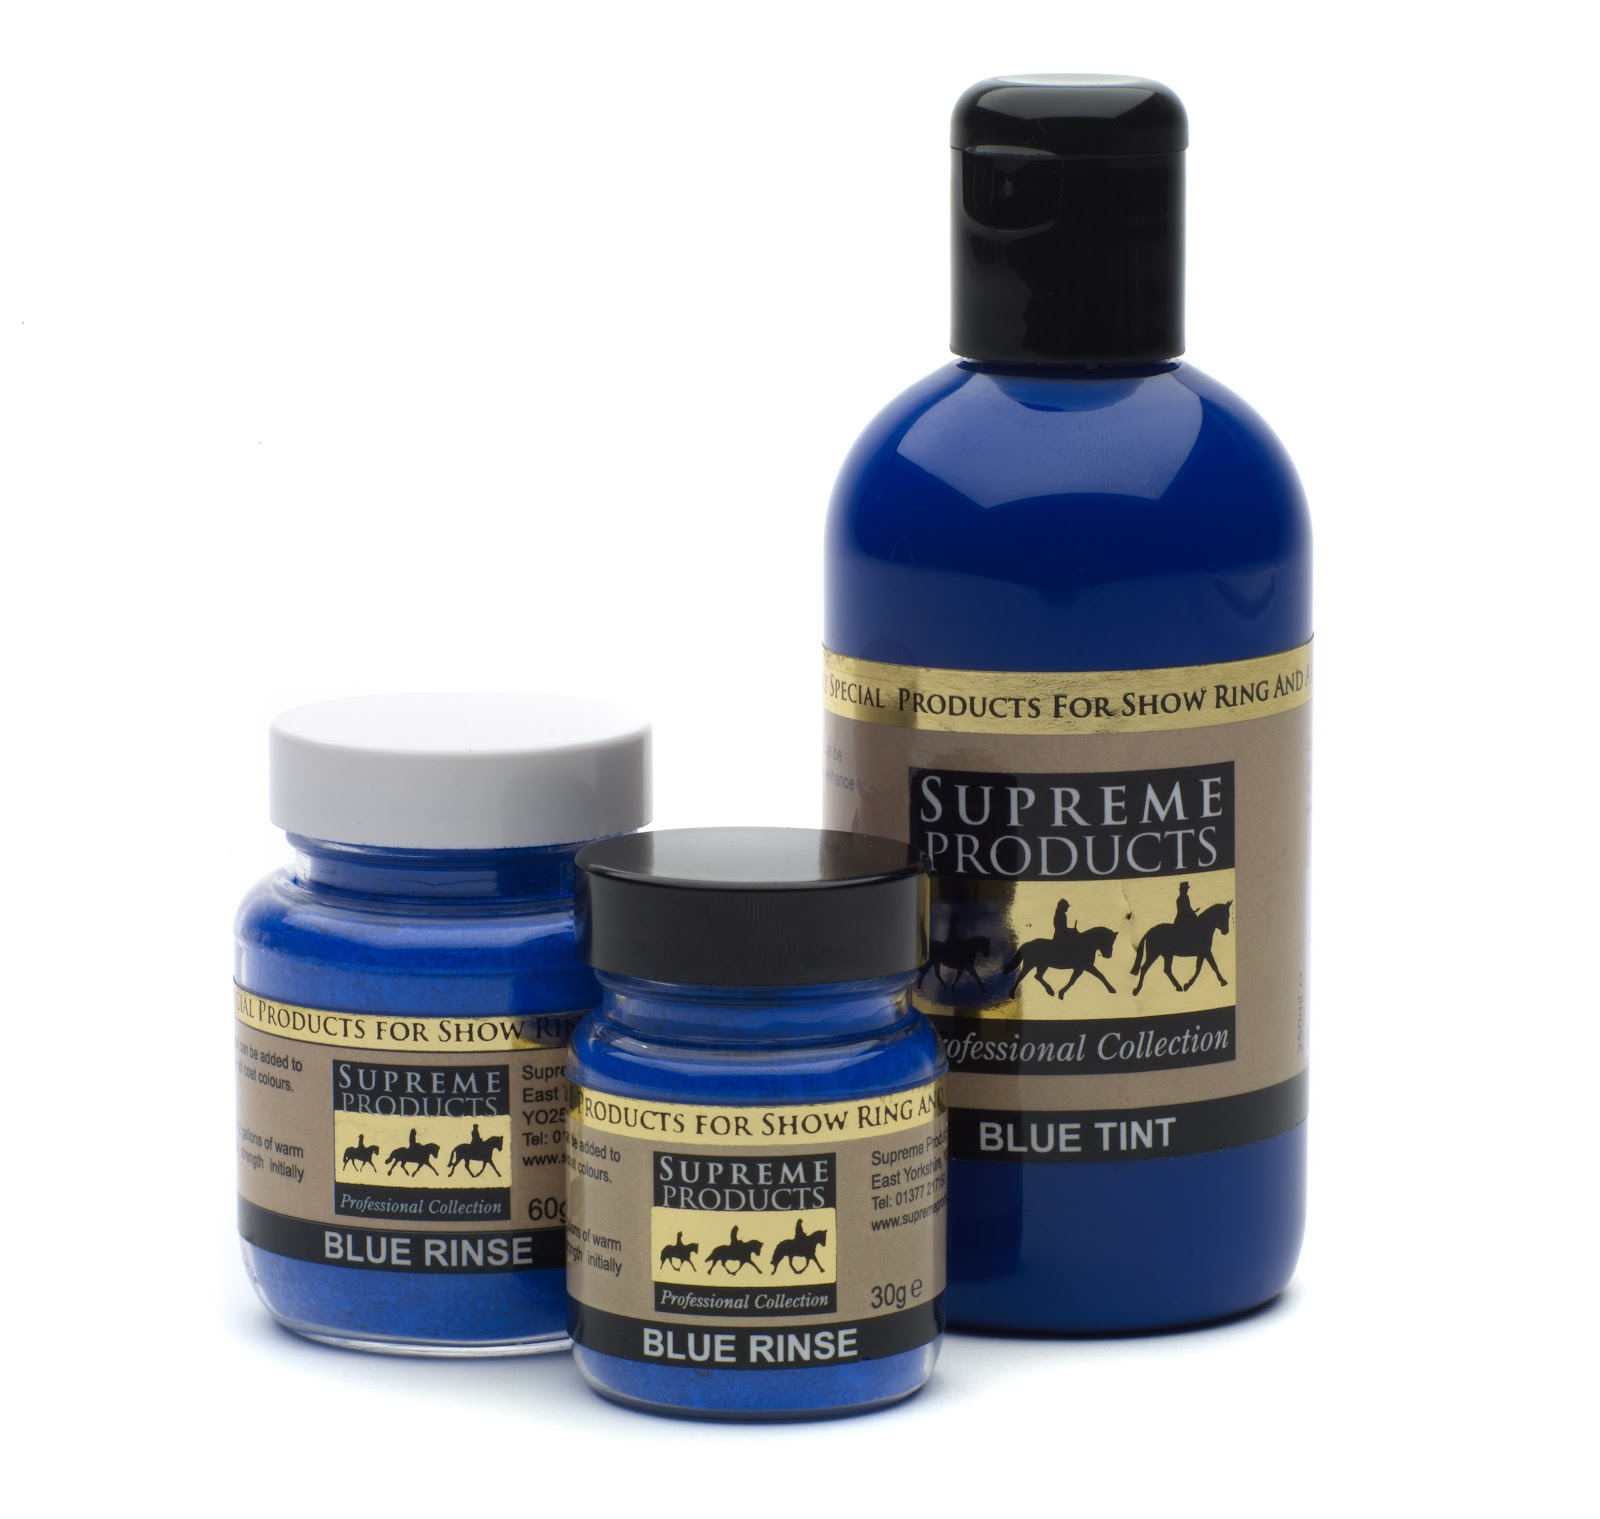 Supreme products may 2012 for Dujardin jerome